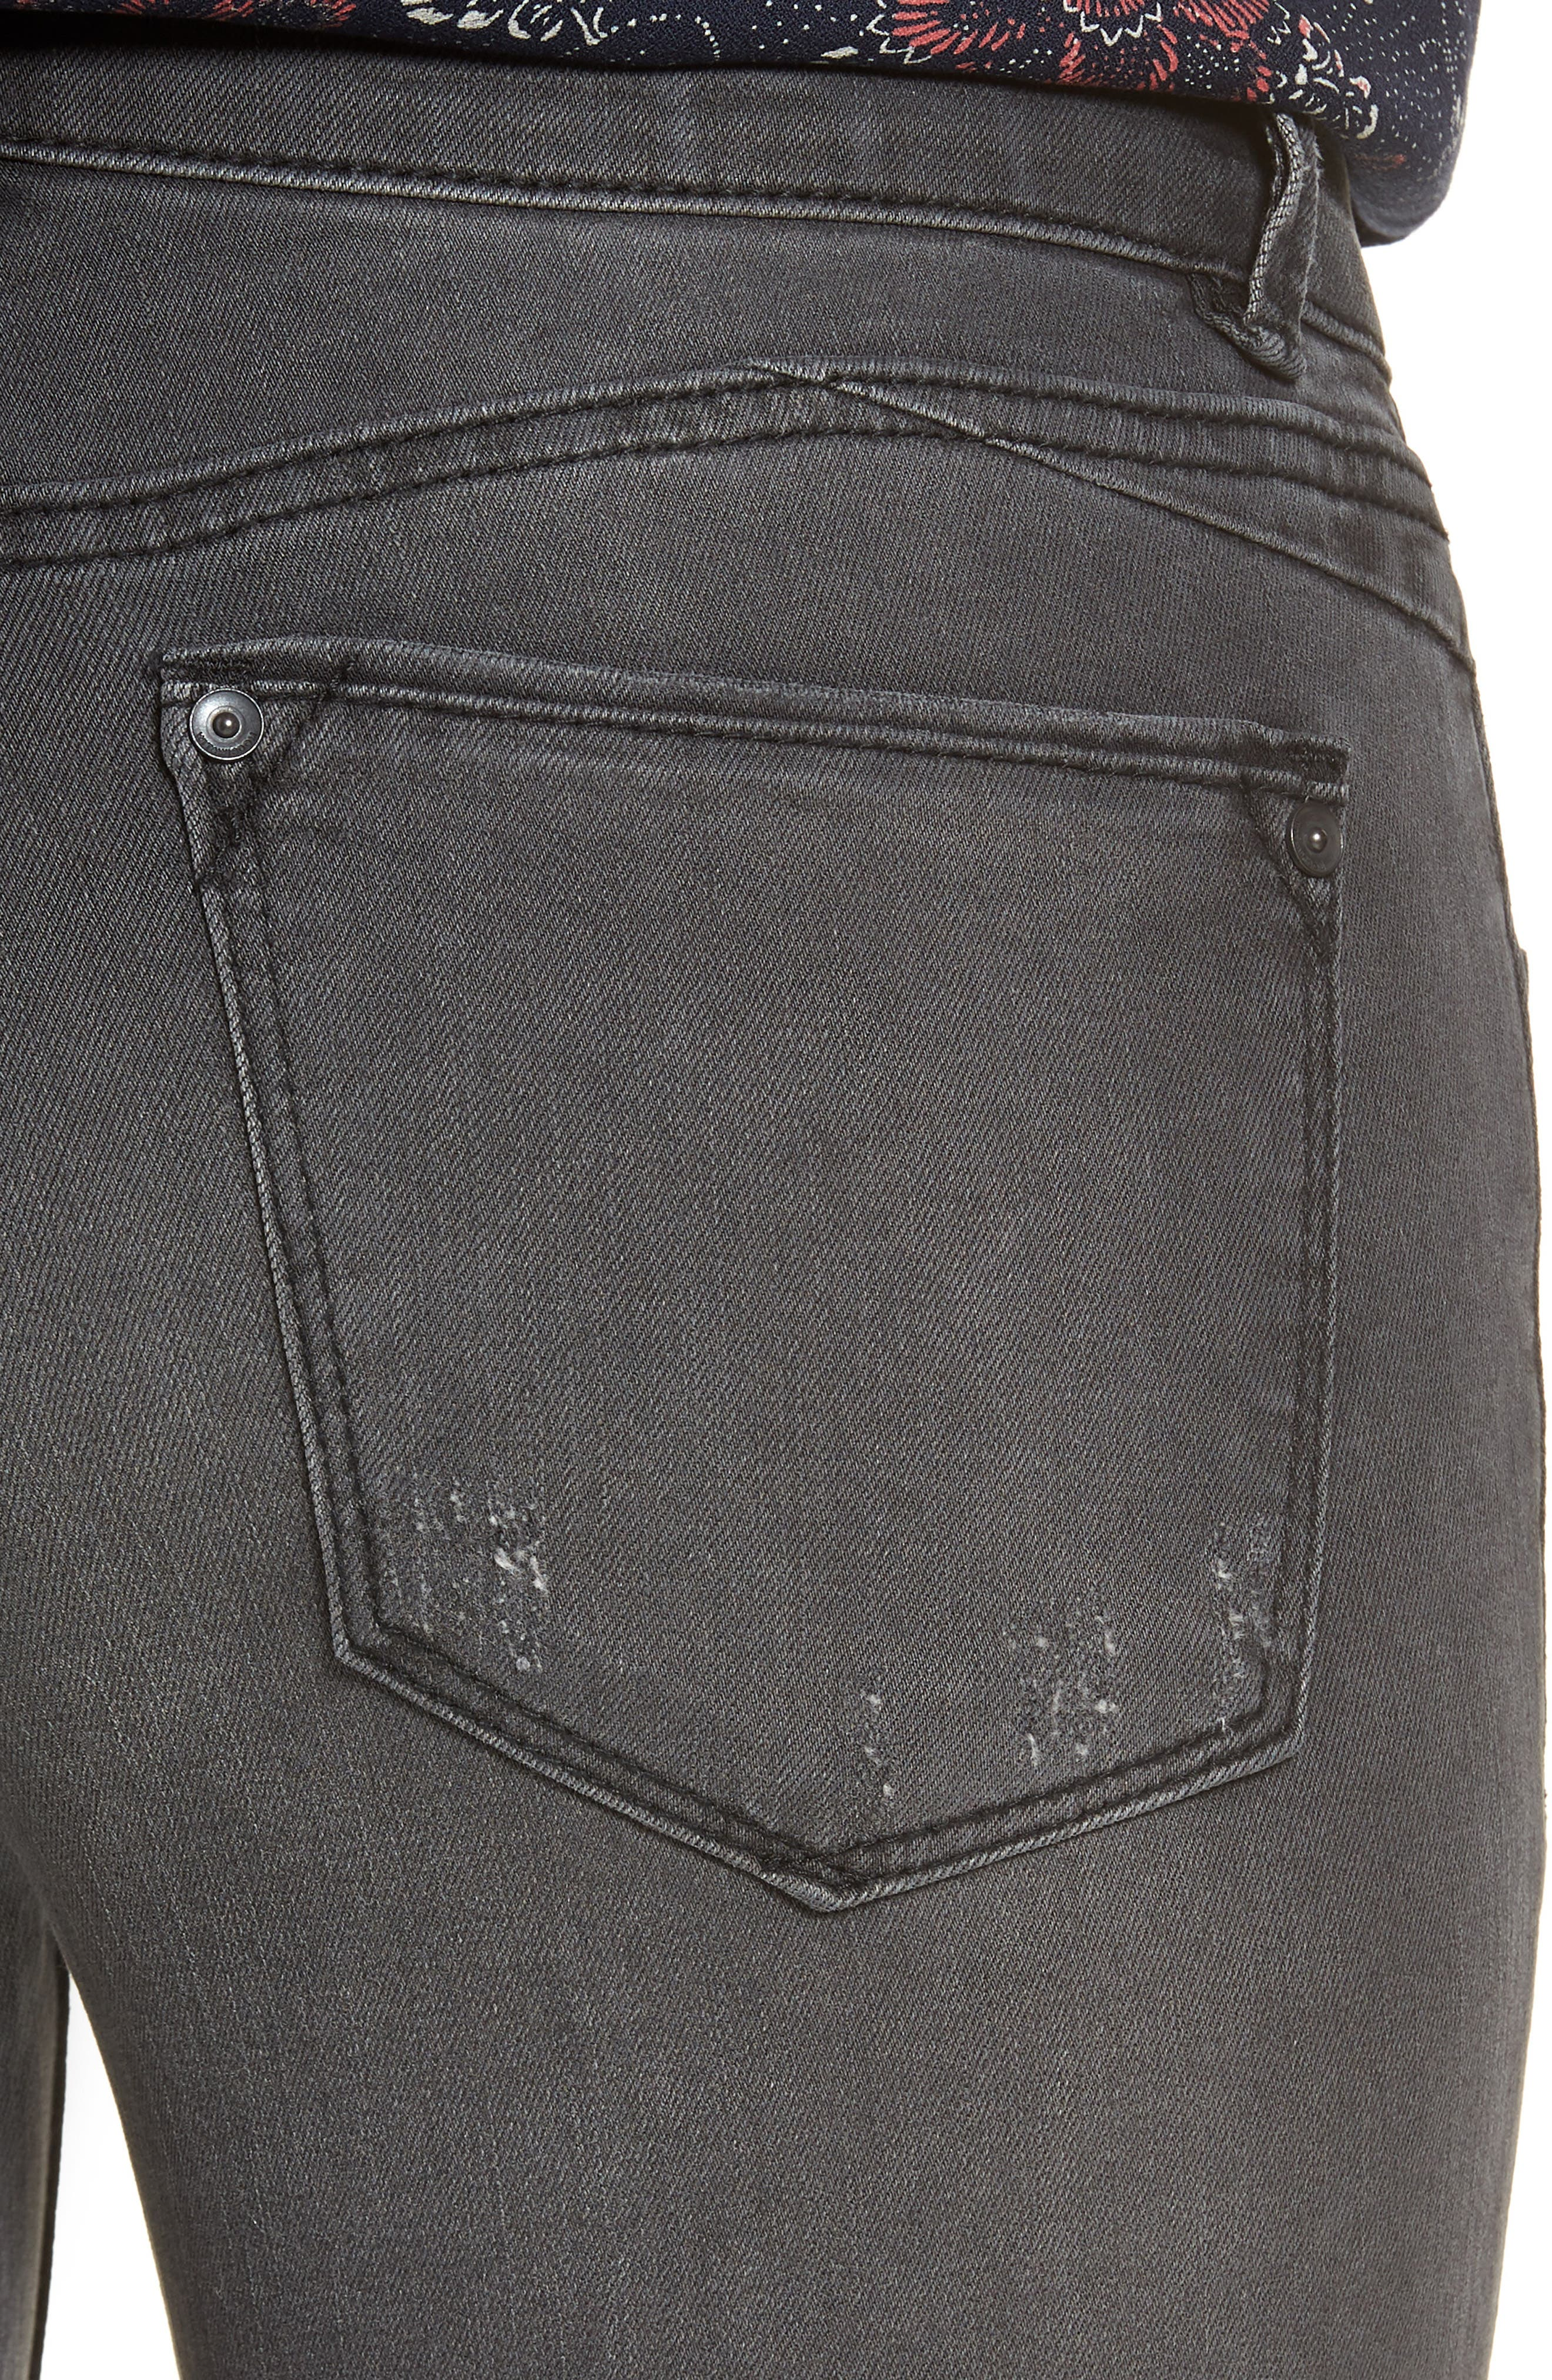 Ab-Solution Ankle Skinny Stretch Jeans,                             Alternate thumbnail 4, color,                             020